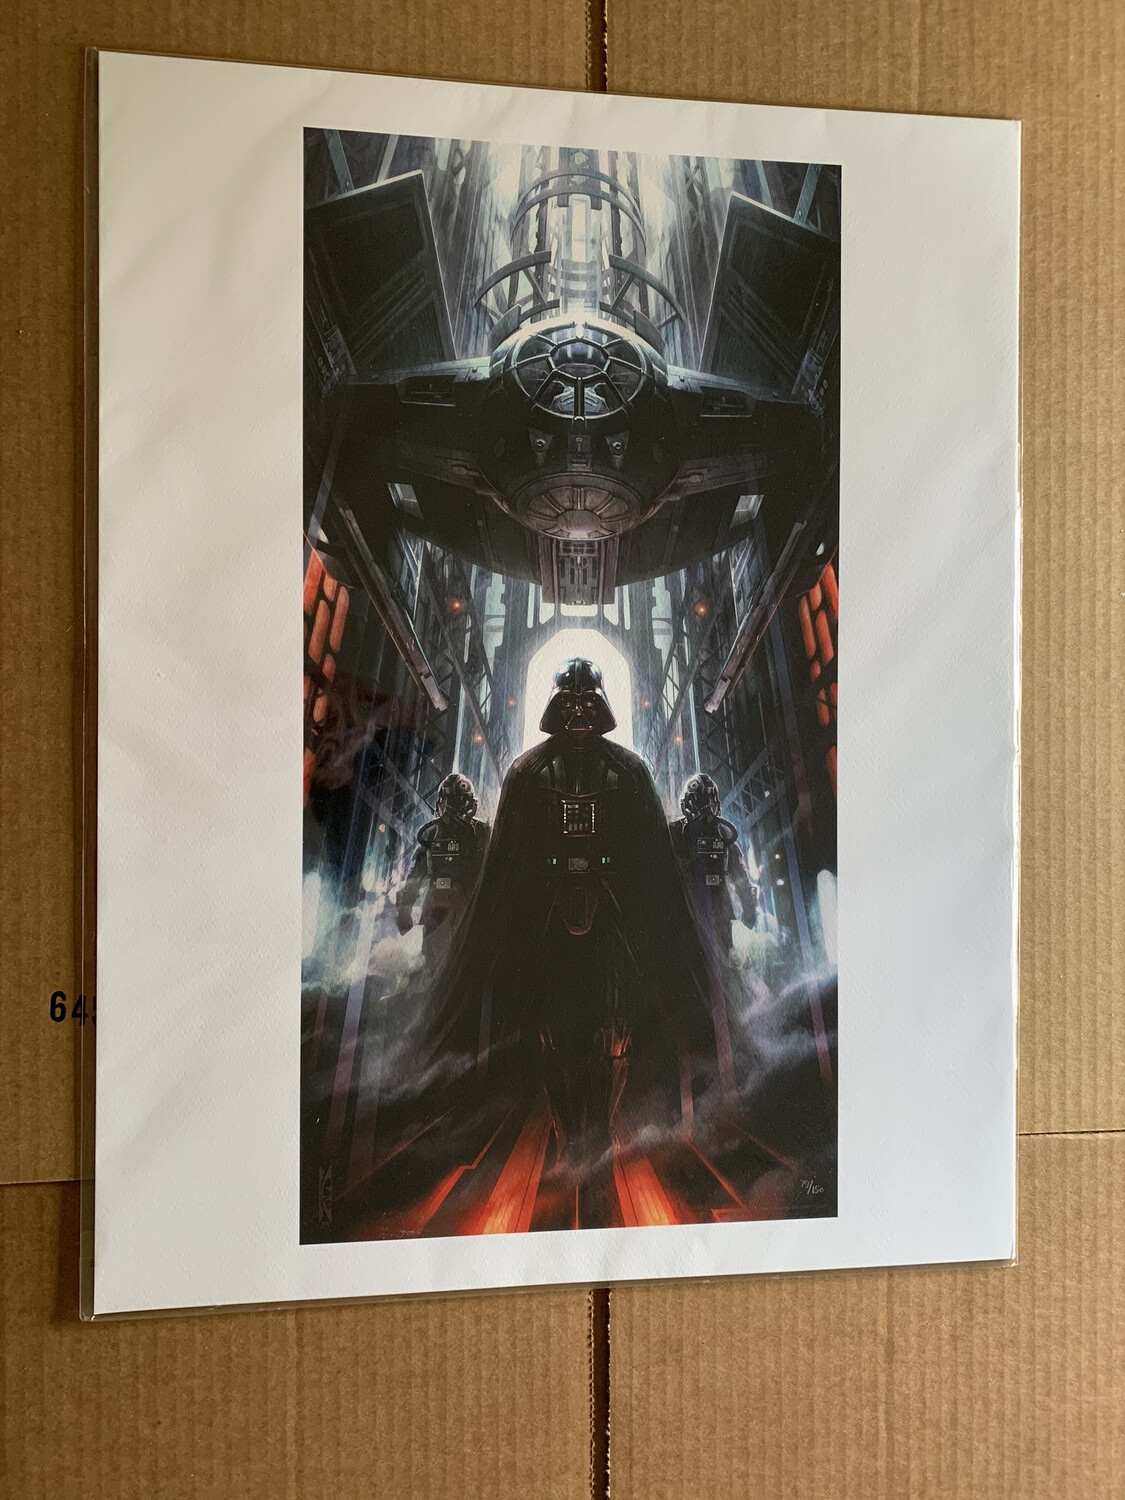 MACHINES OF DOMINION #79 OF 150 BY RAYMOND SWANLAND WITH FREE SIGNED DARTH VADER PHOTO